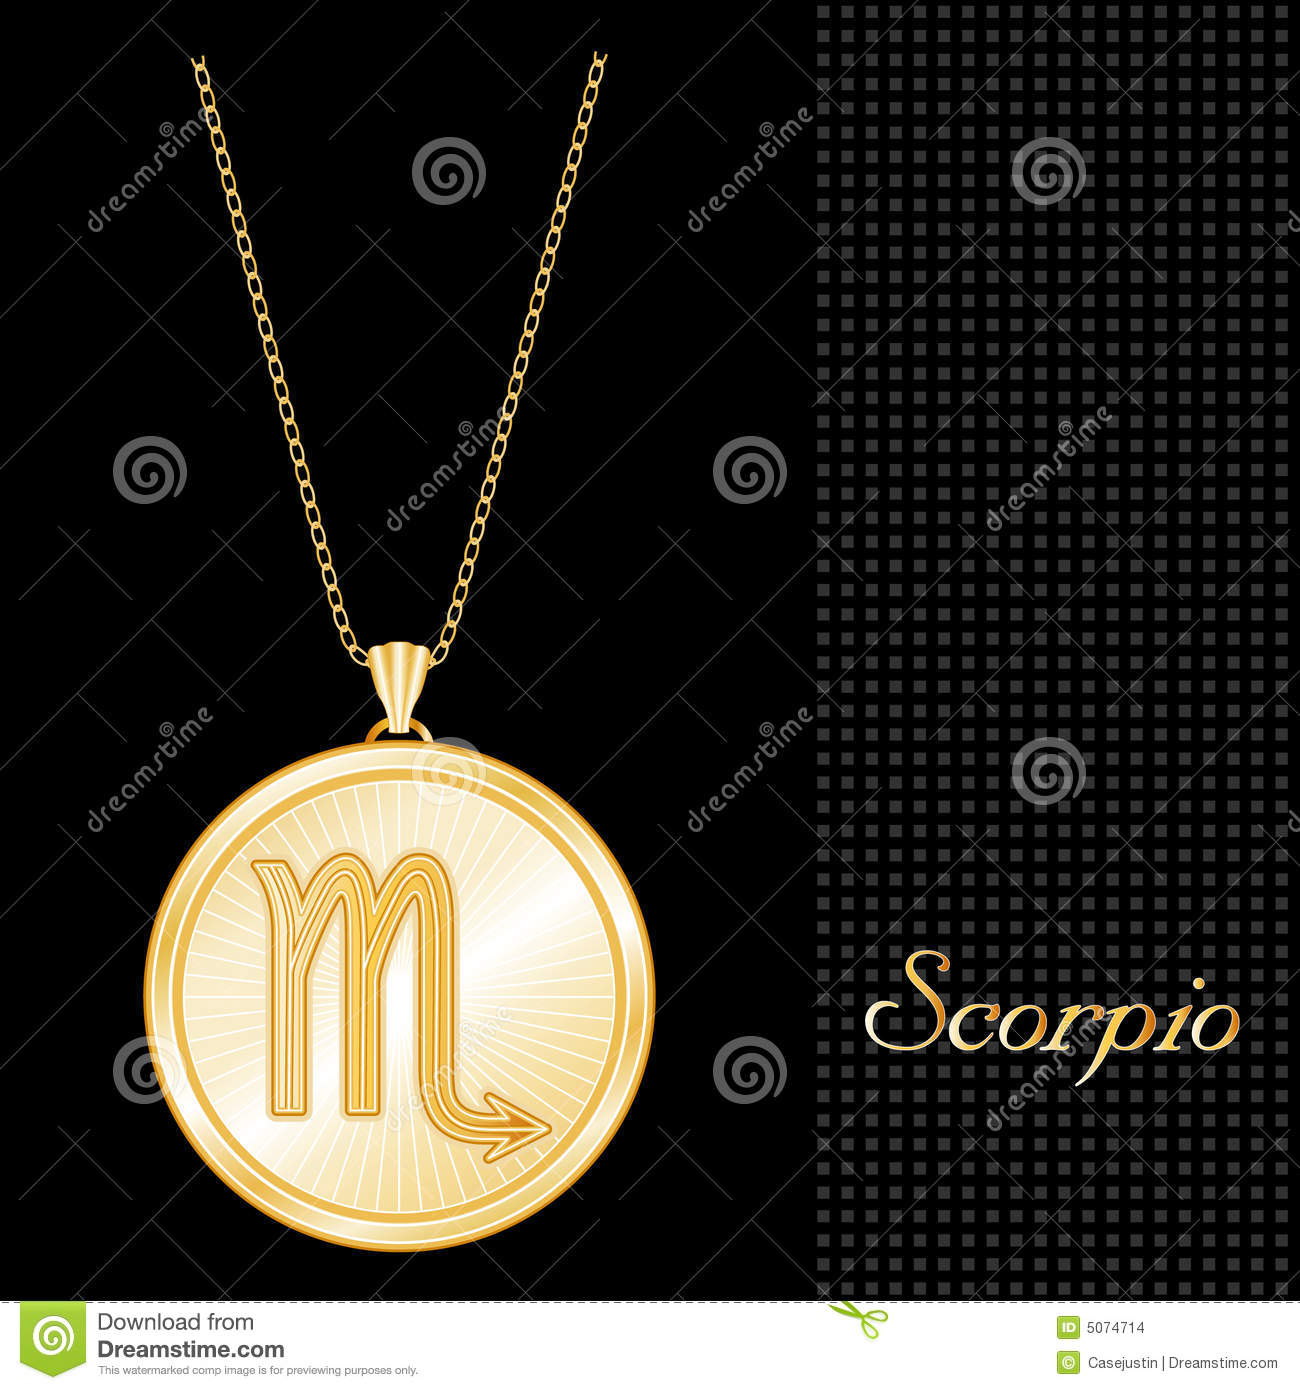 grandiose code product gold pendant scorpio buy online chain plated oxidized with